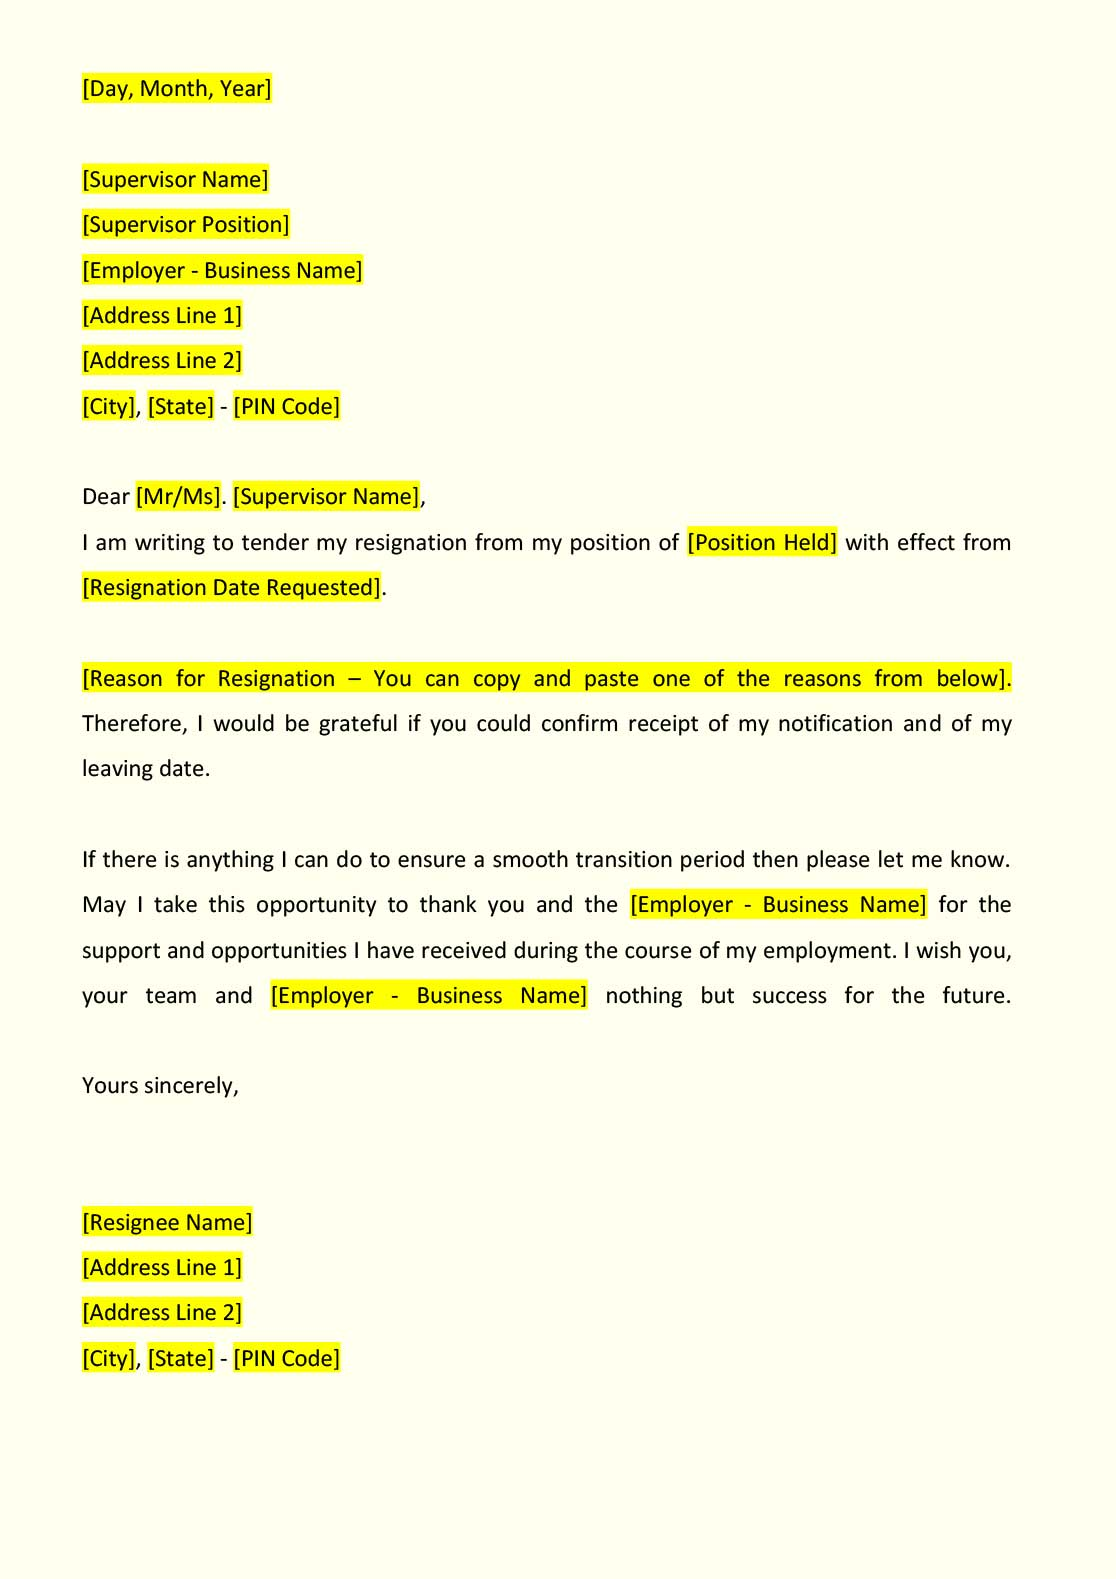 Resignation letter format indiafilings document center sample resignation letter expocarfo